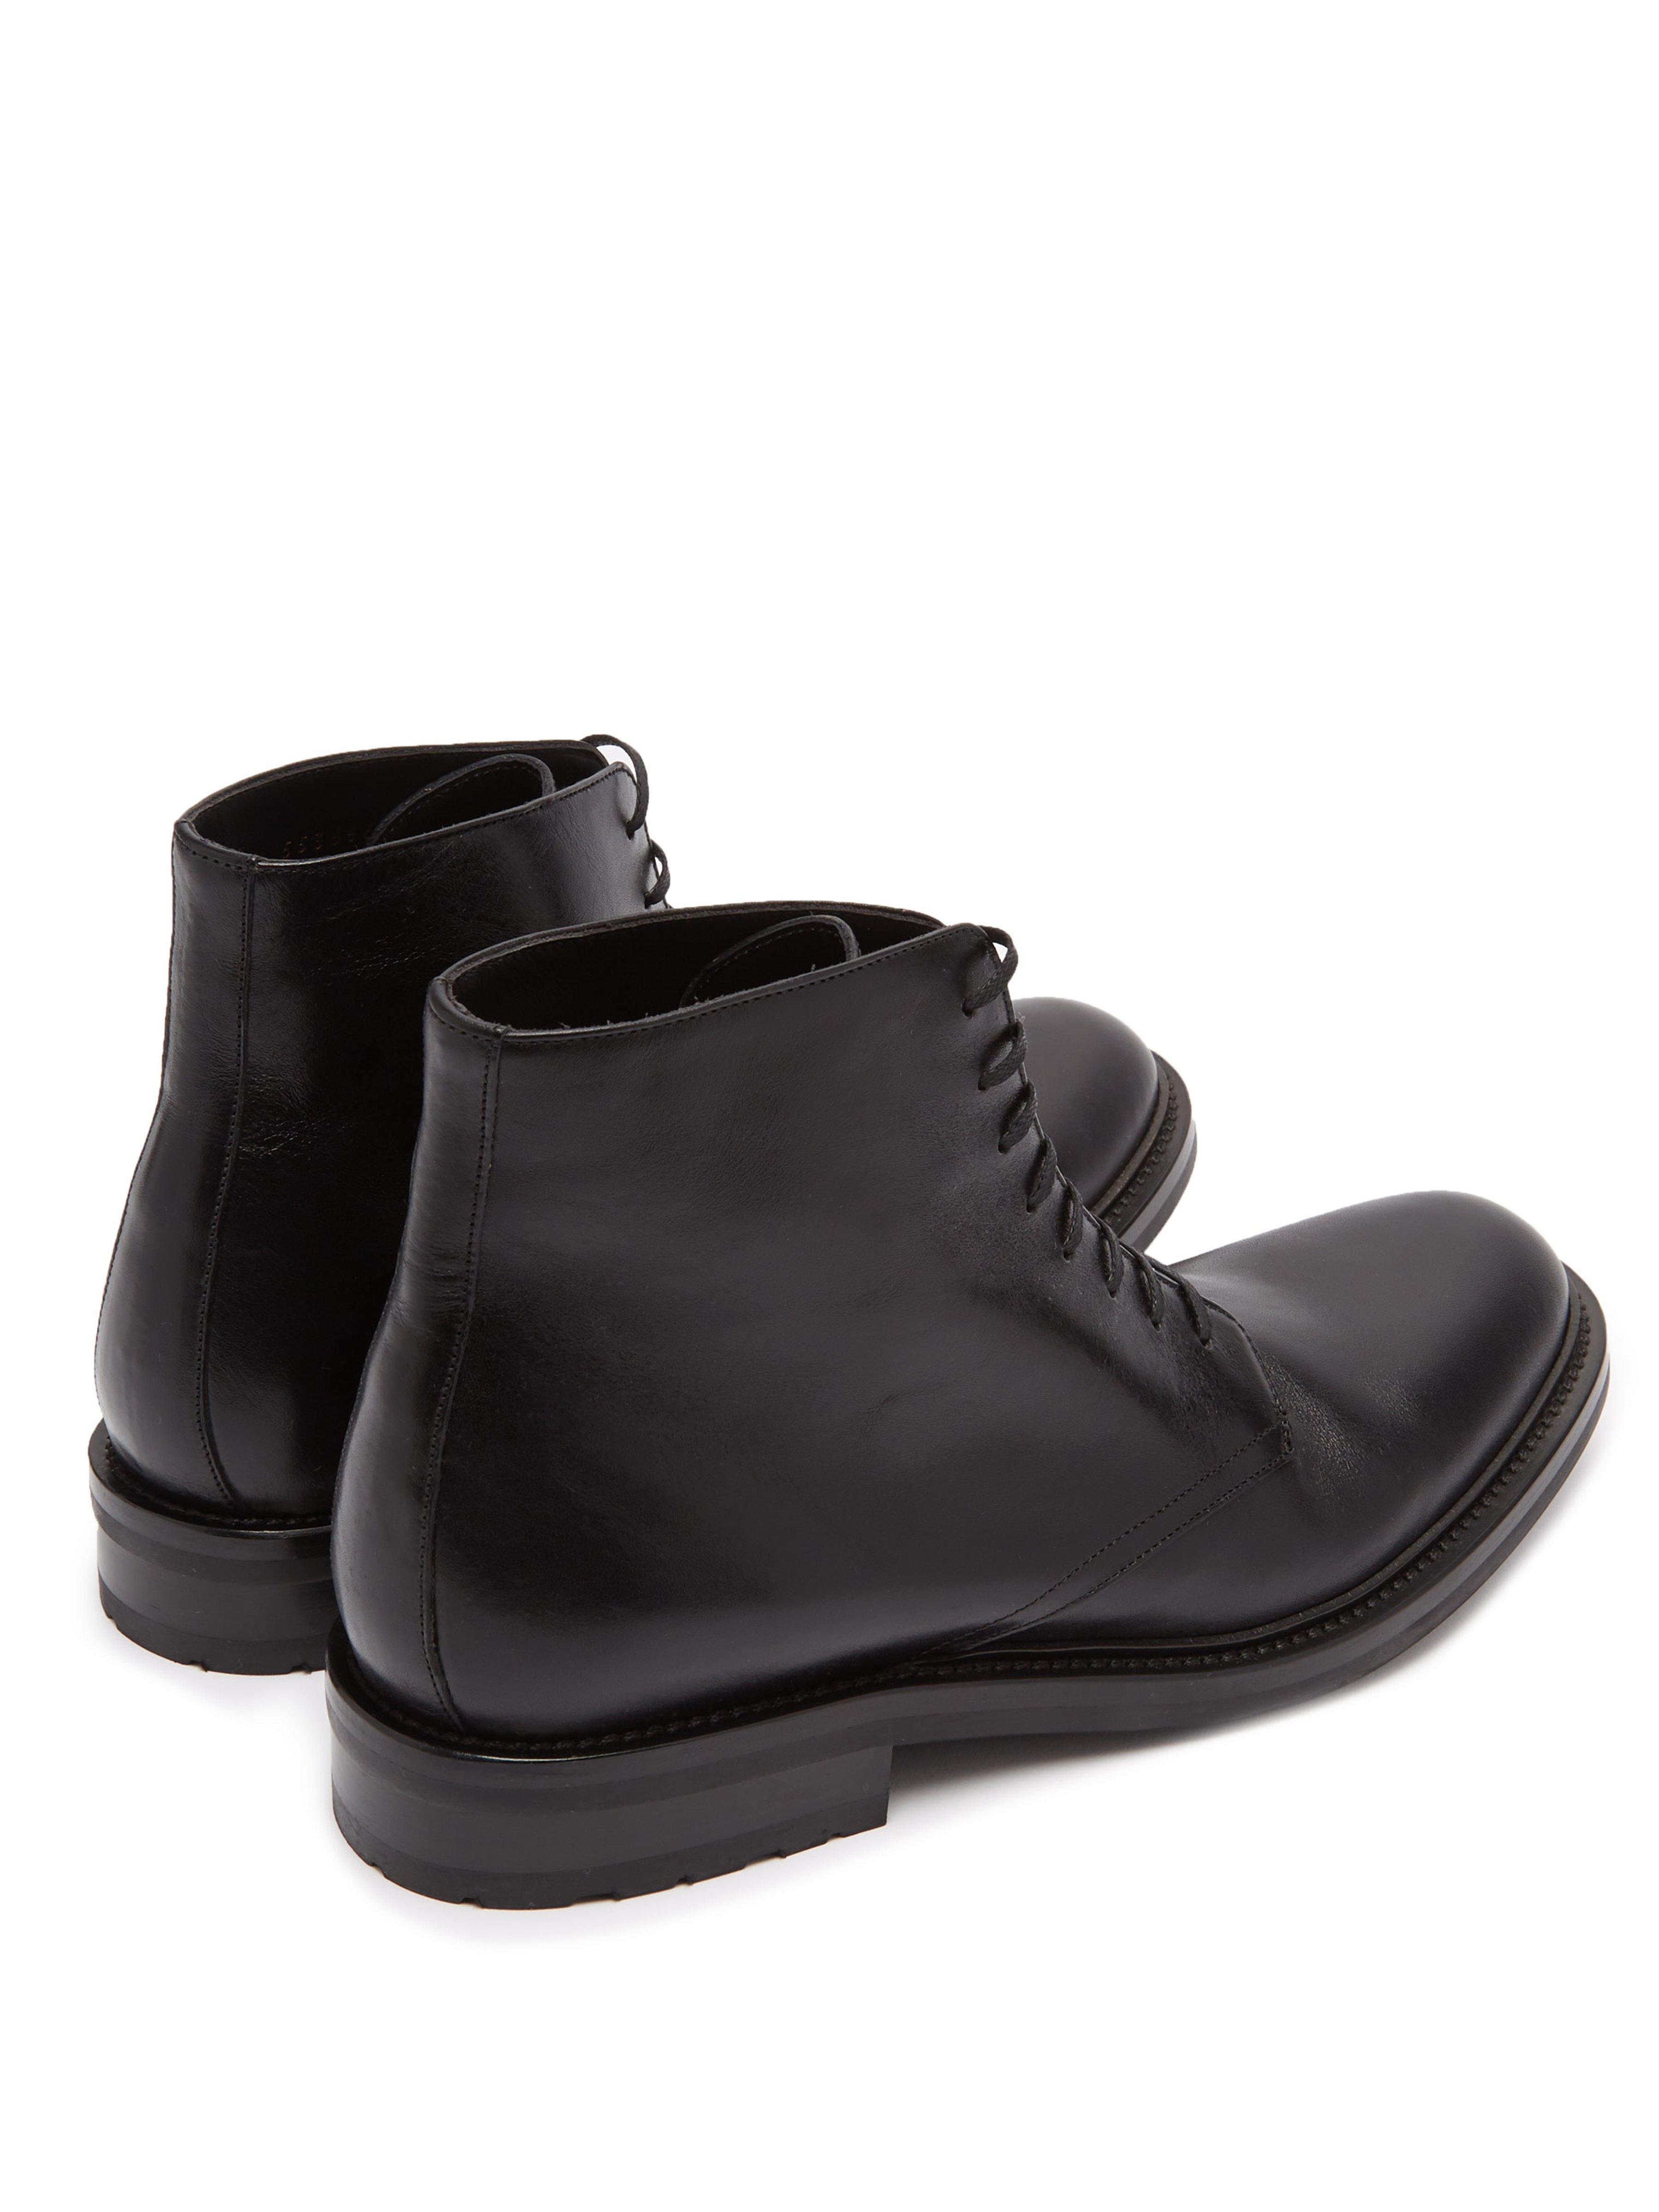 8df51612624 Saint Laurent Army Lace Up Leather Boots in Black for Men - Lyst